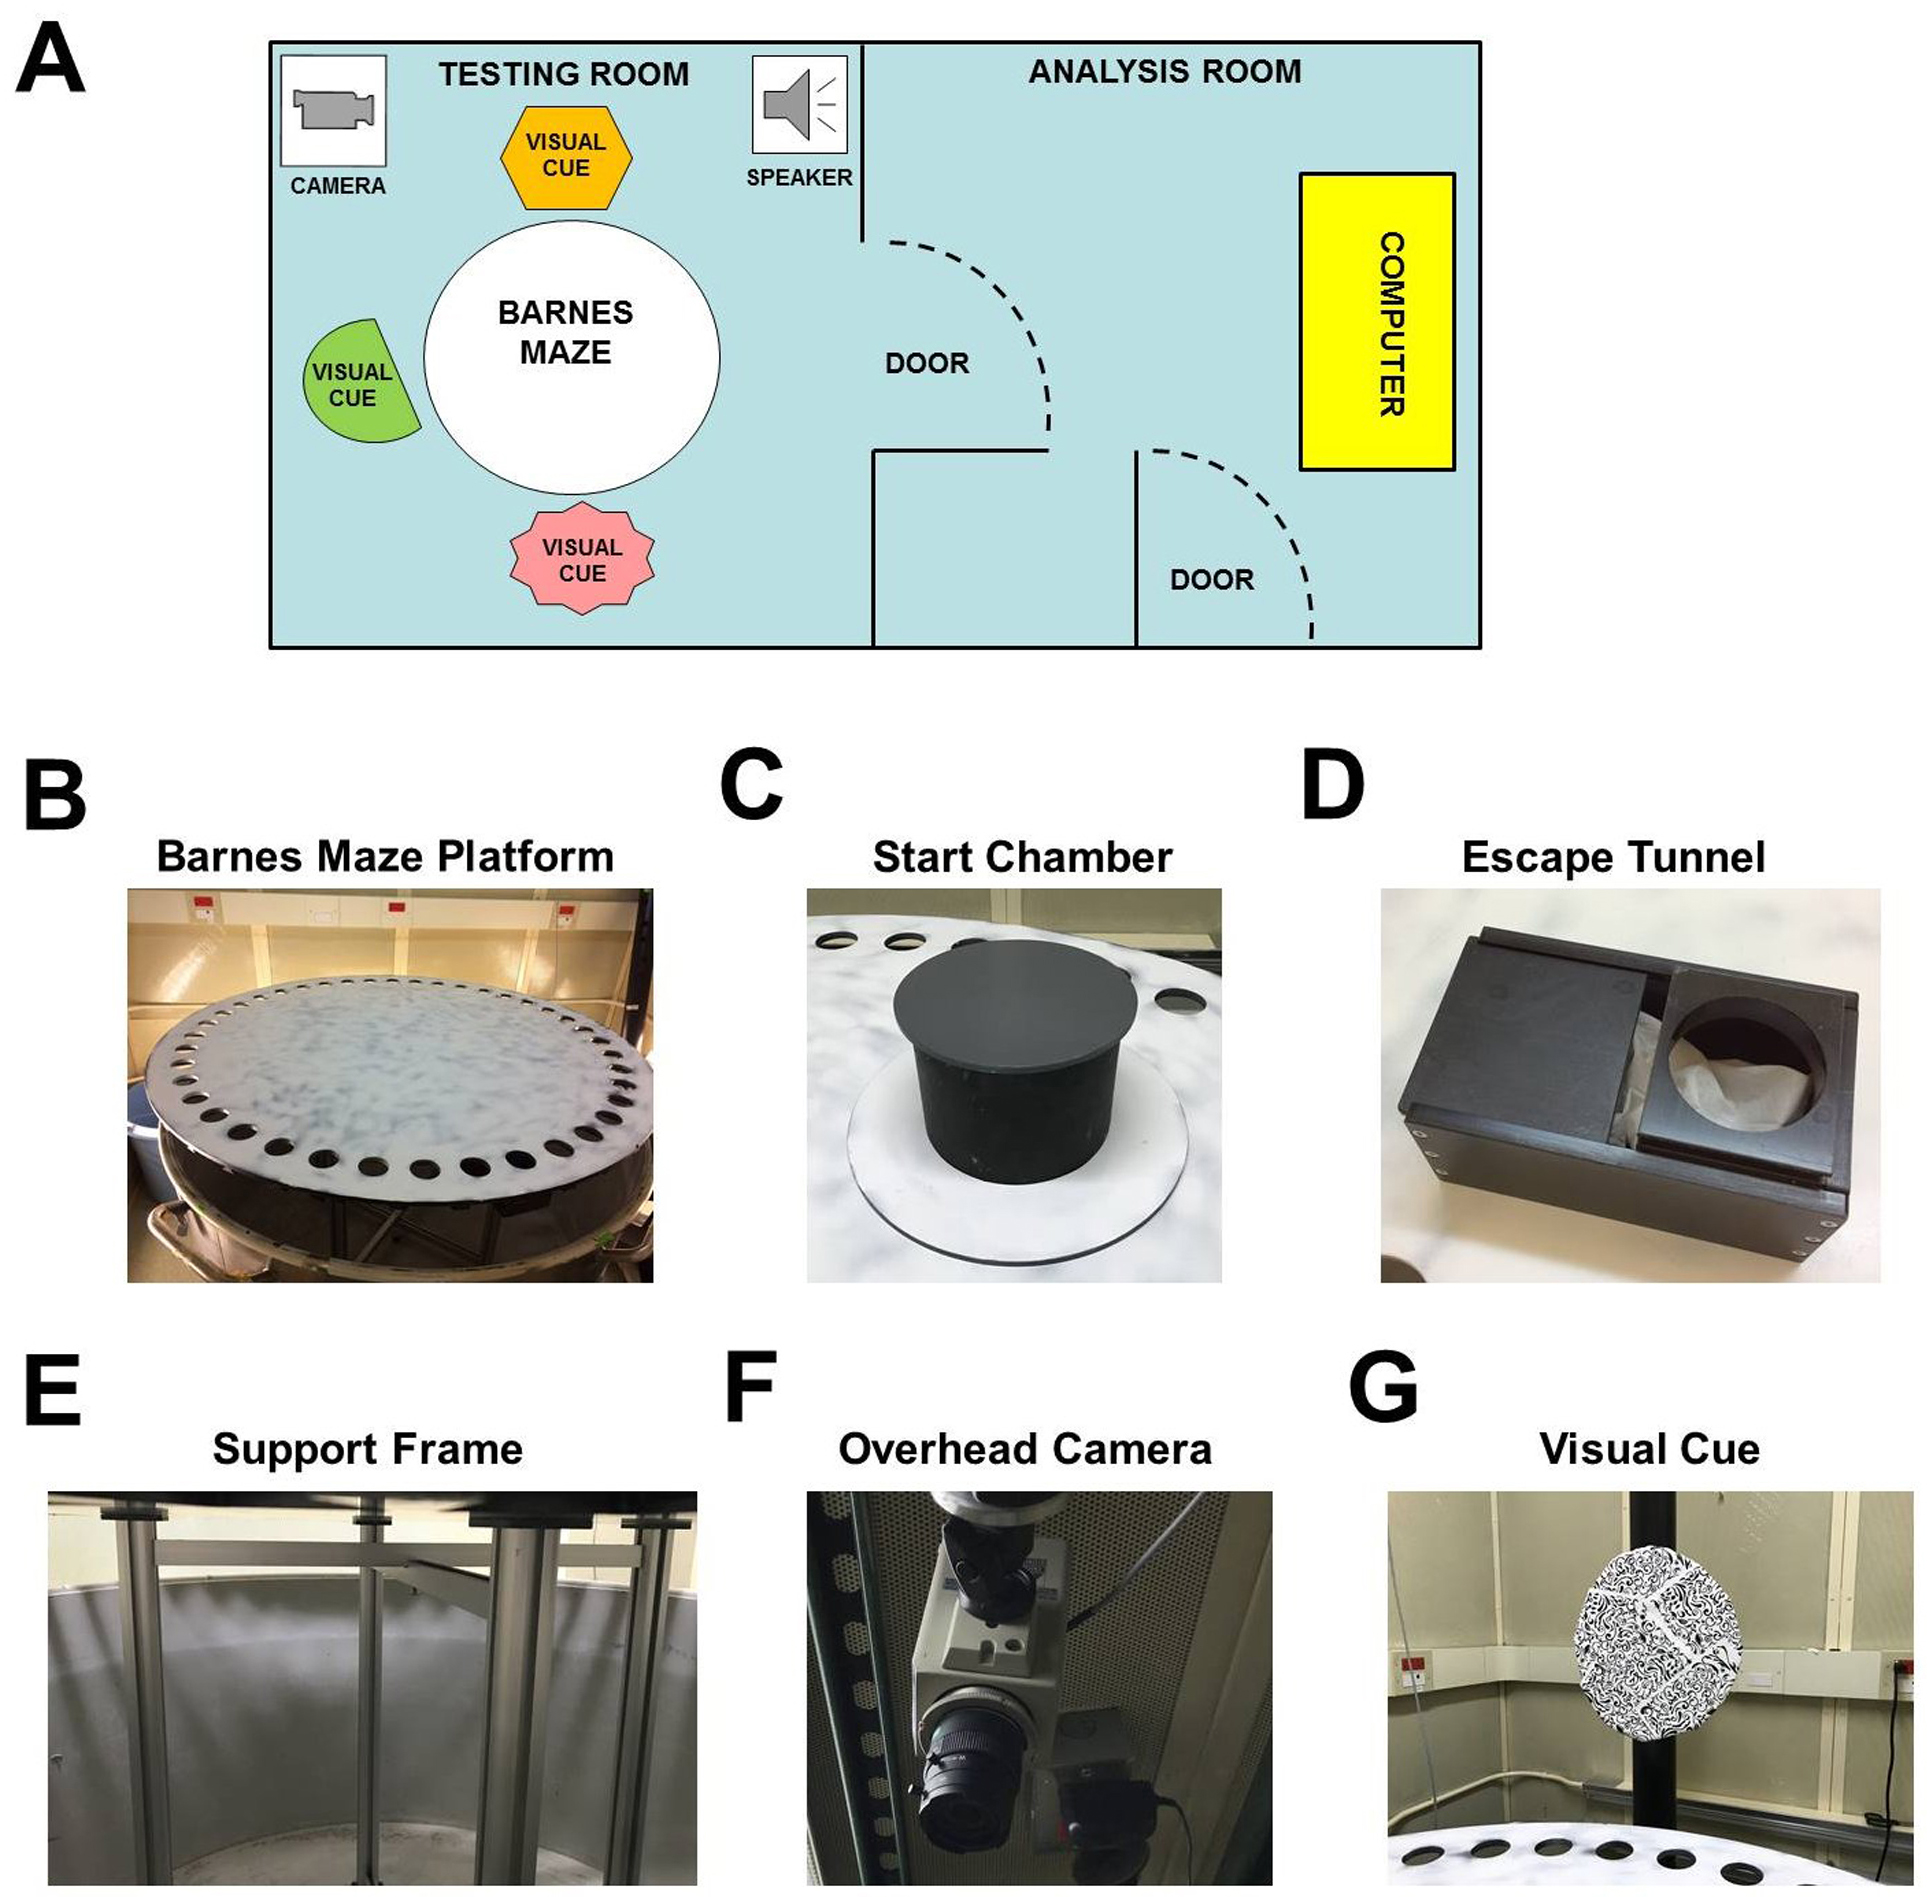 barnes maze procedure for spatial learning and memory inbarnes maze experimental setup a layout of behavioral testing room and adjacent room used for analysis b f images of the barnes maze platform (b),